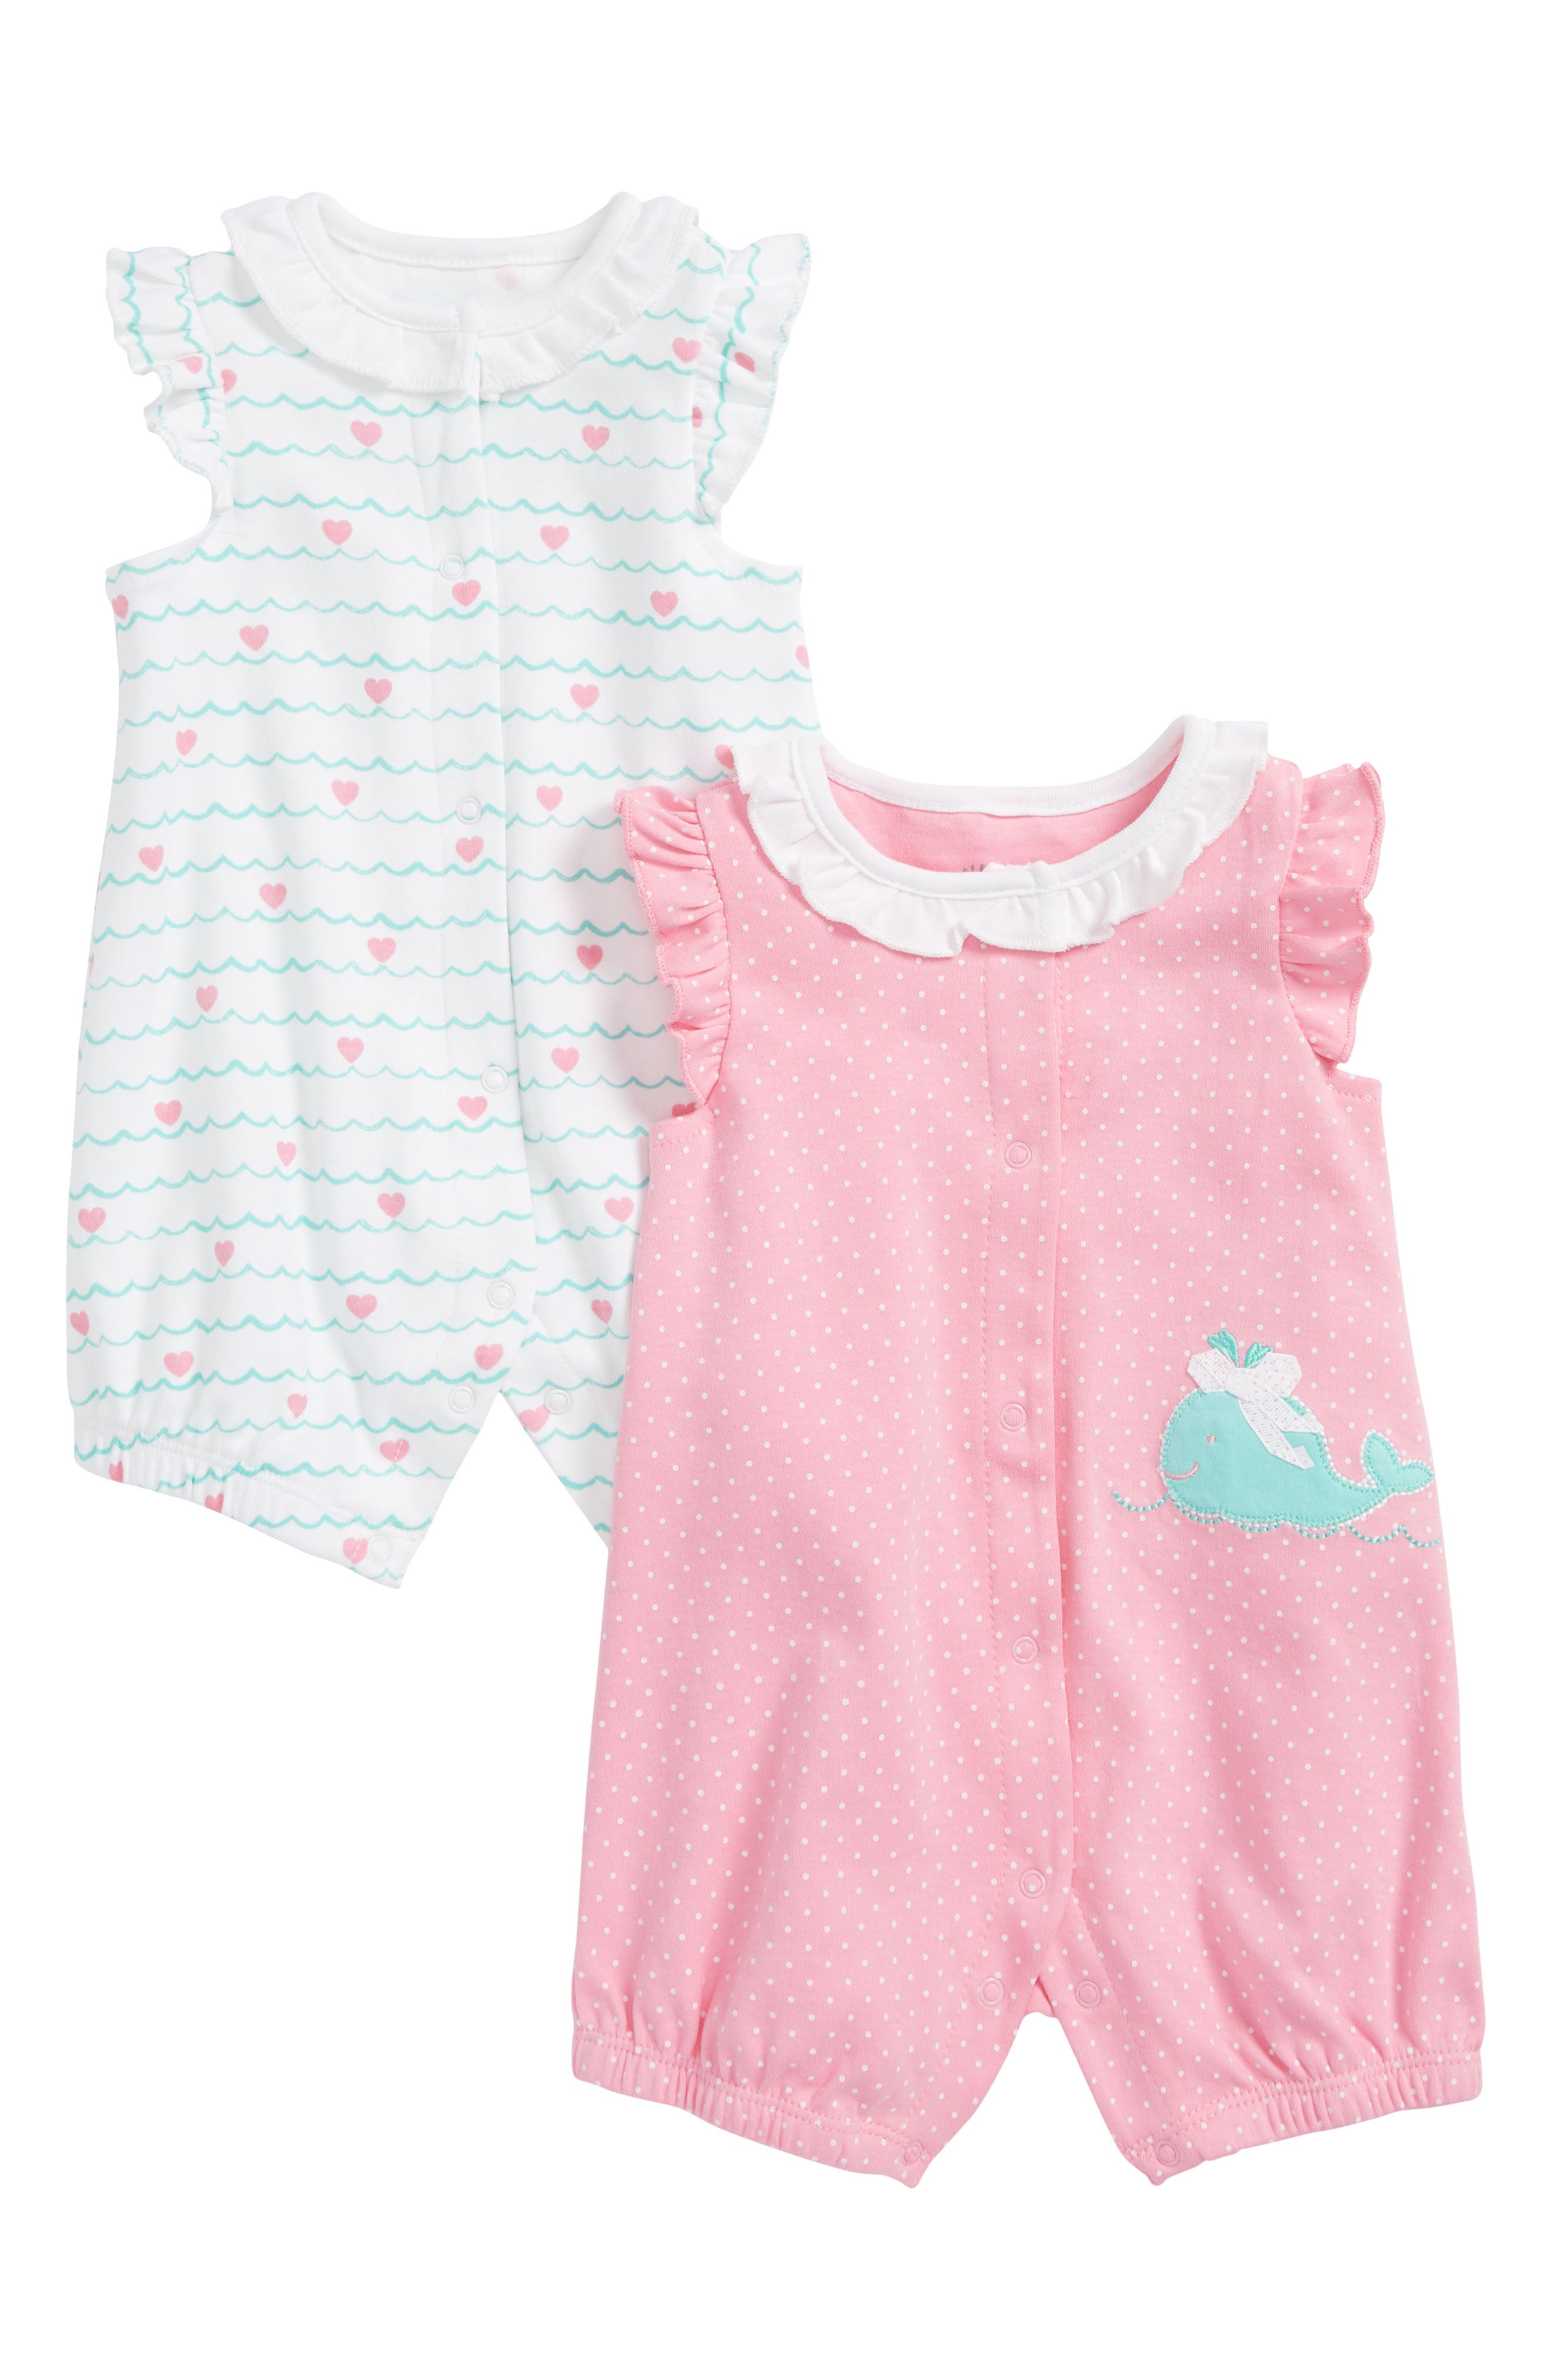 Whale 2-Pack Rompers,                             Main thumbnail 1, color,                             699